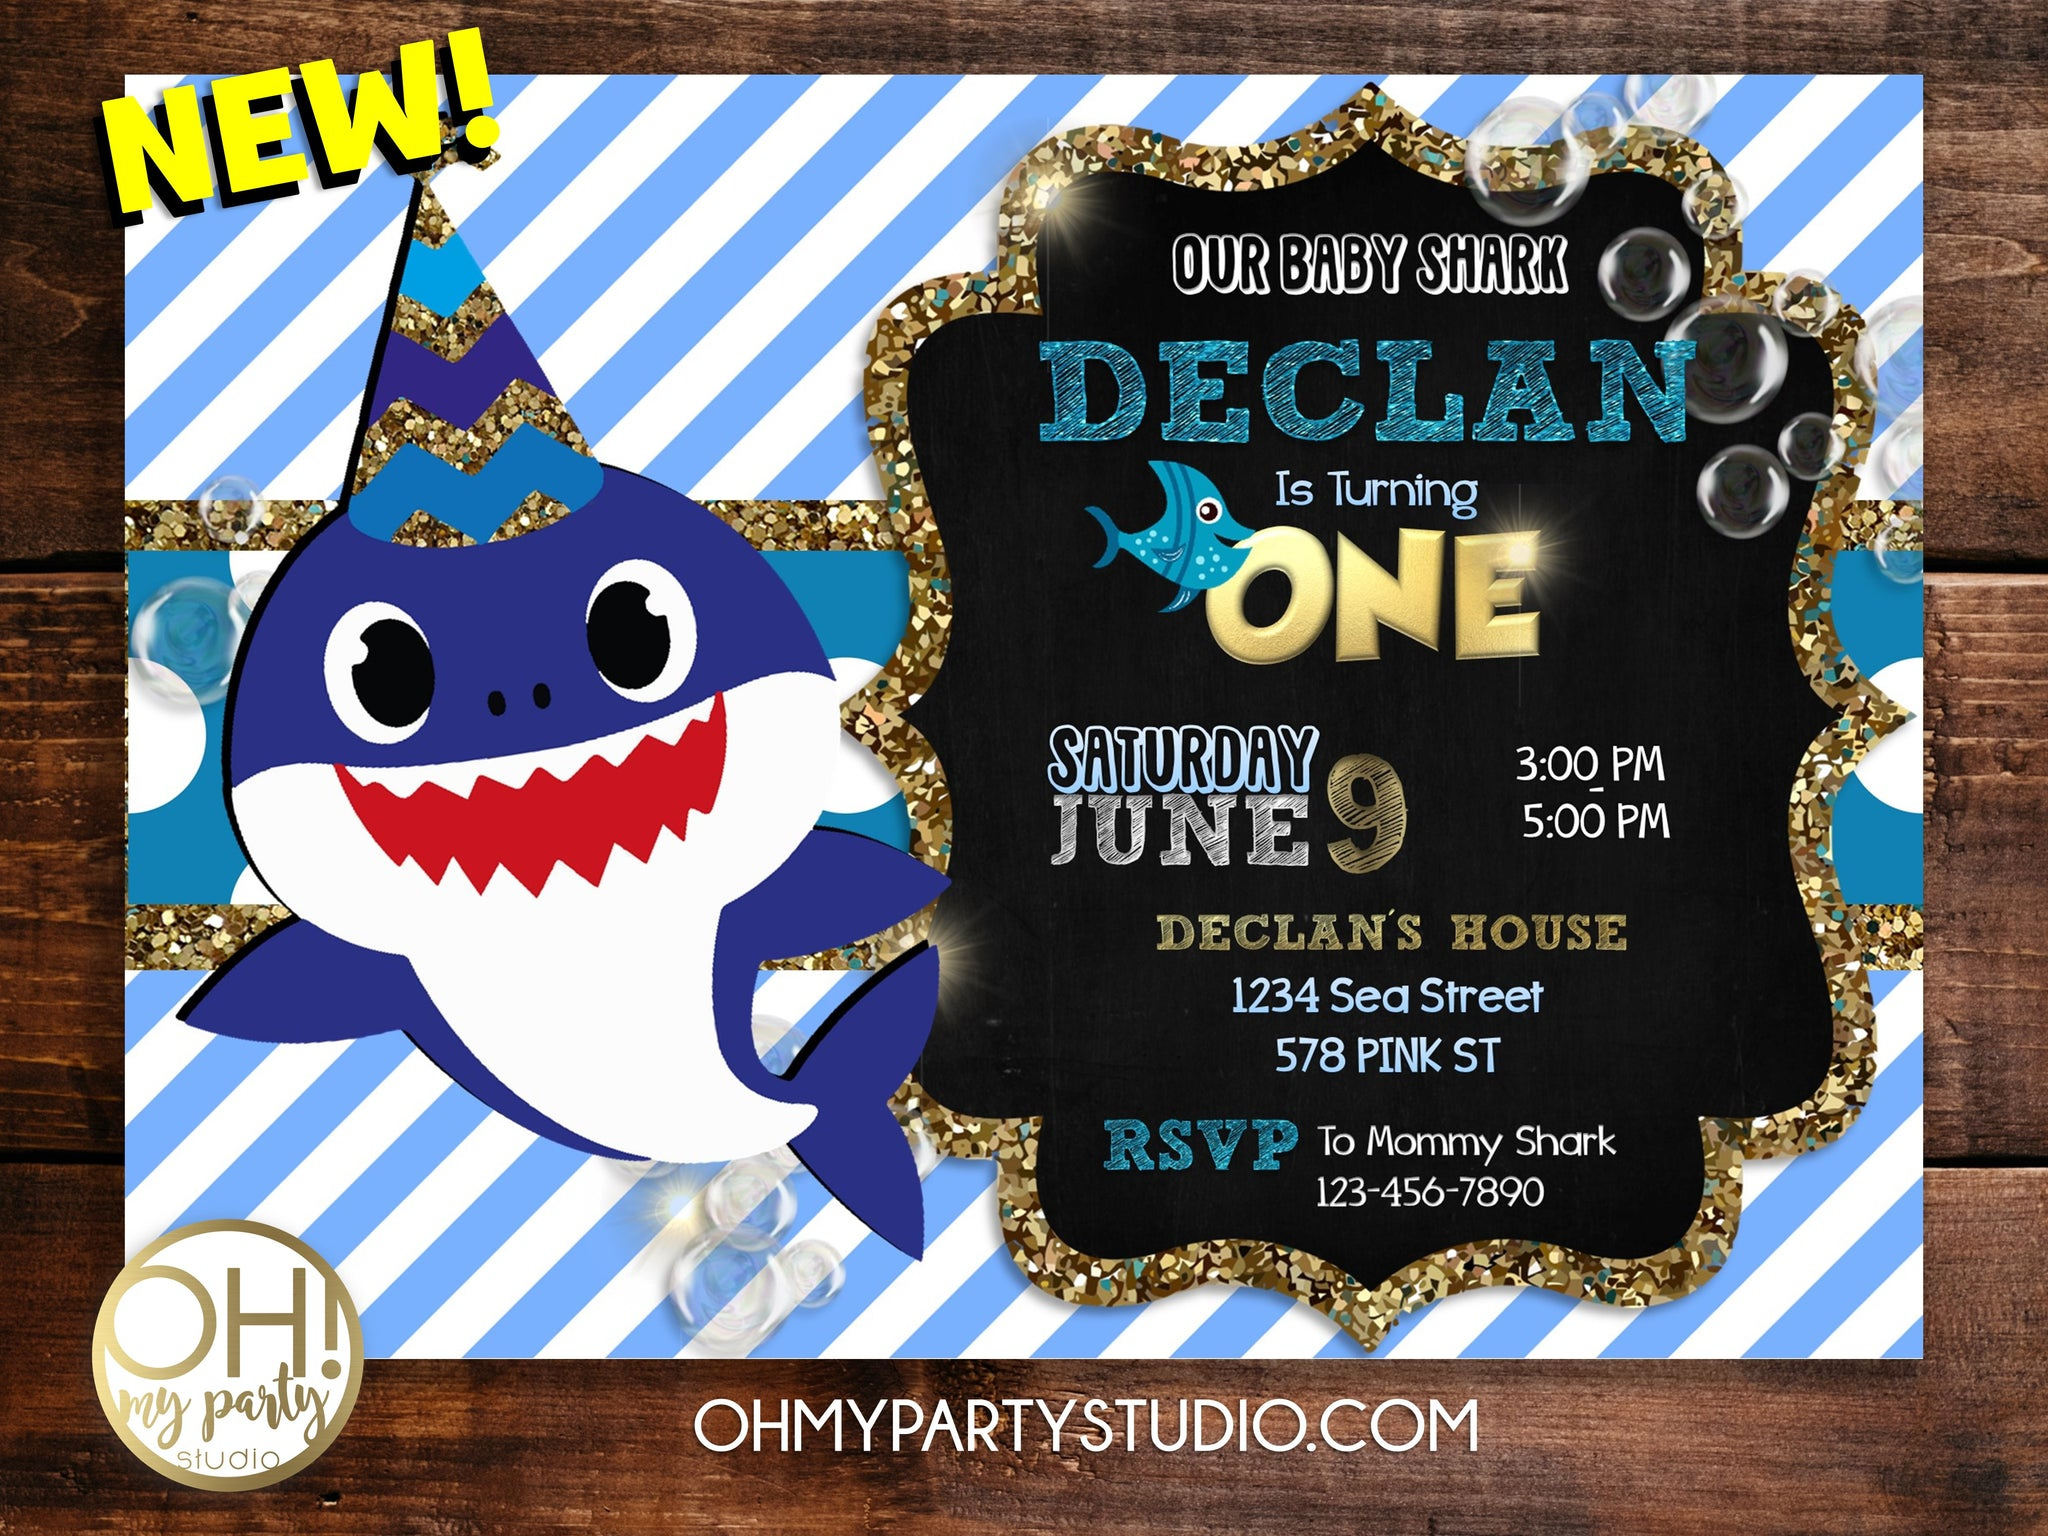 Baby shark birthday invitation for boy, baby shark invitation, baby shark party, baby shark invitations,baby shark party ideas